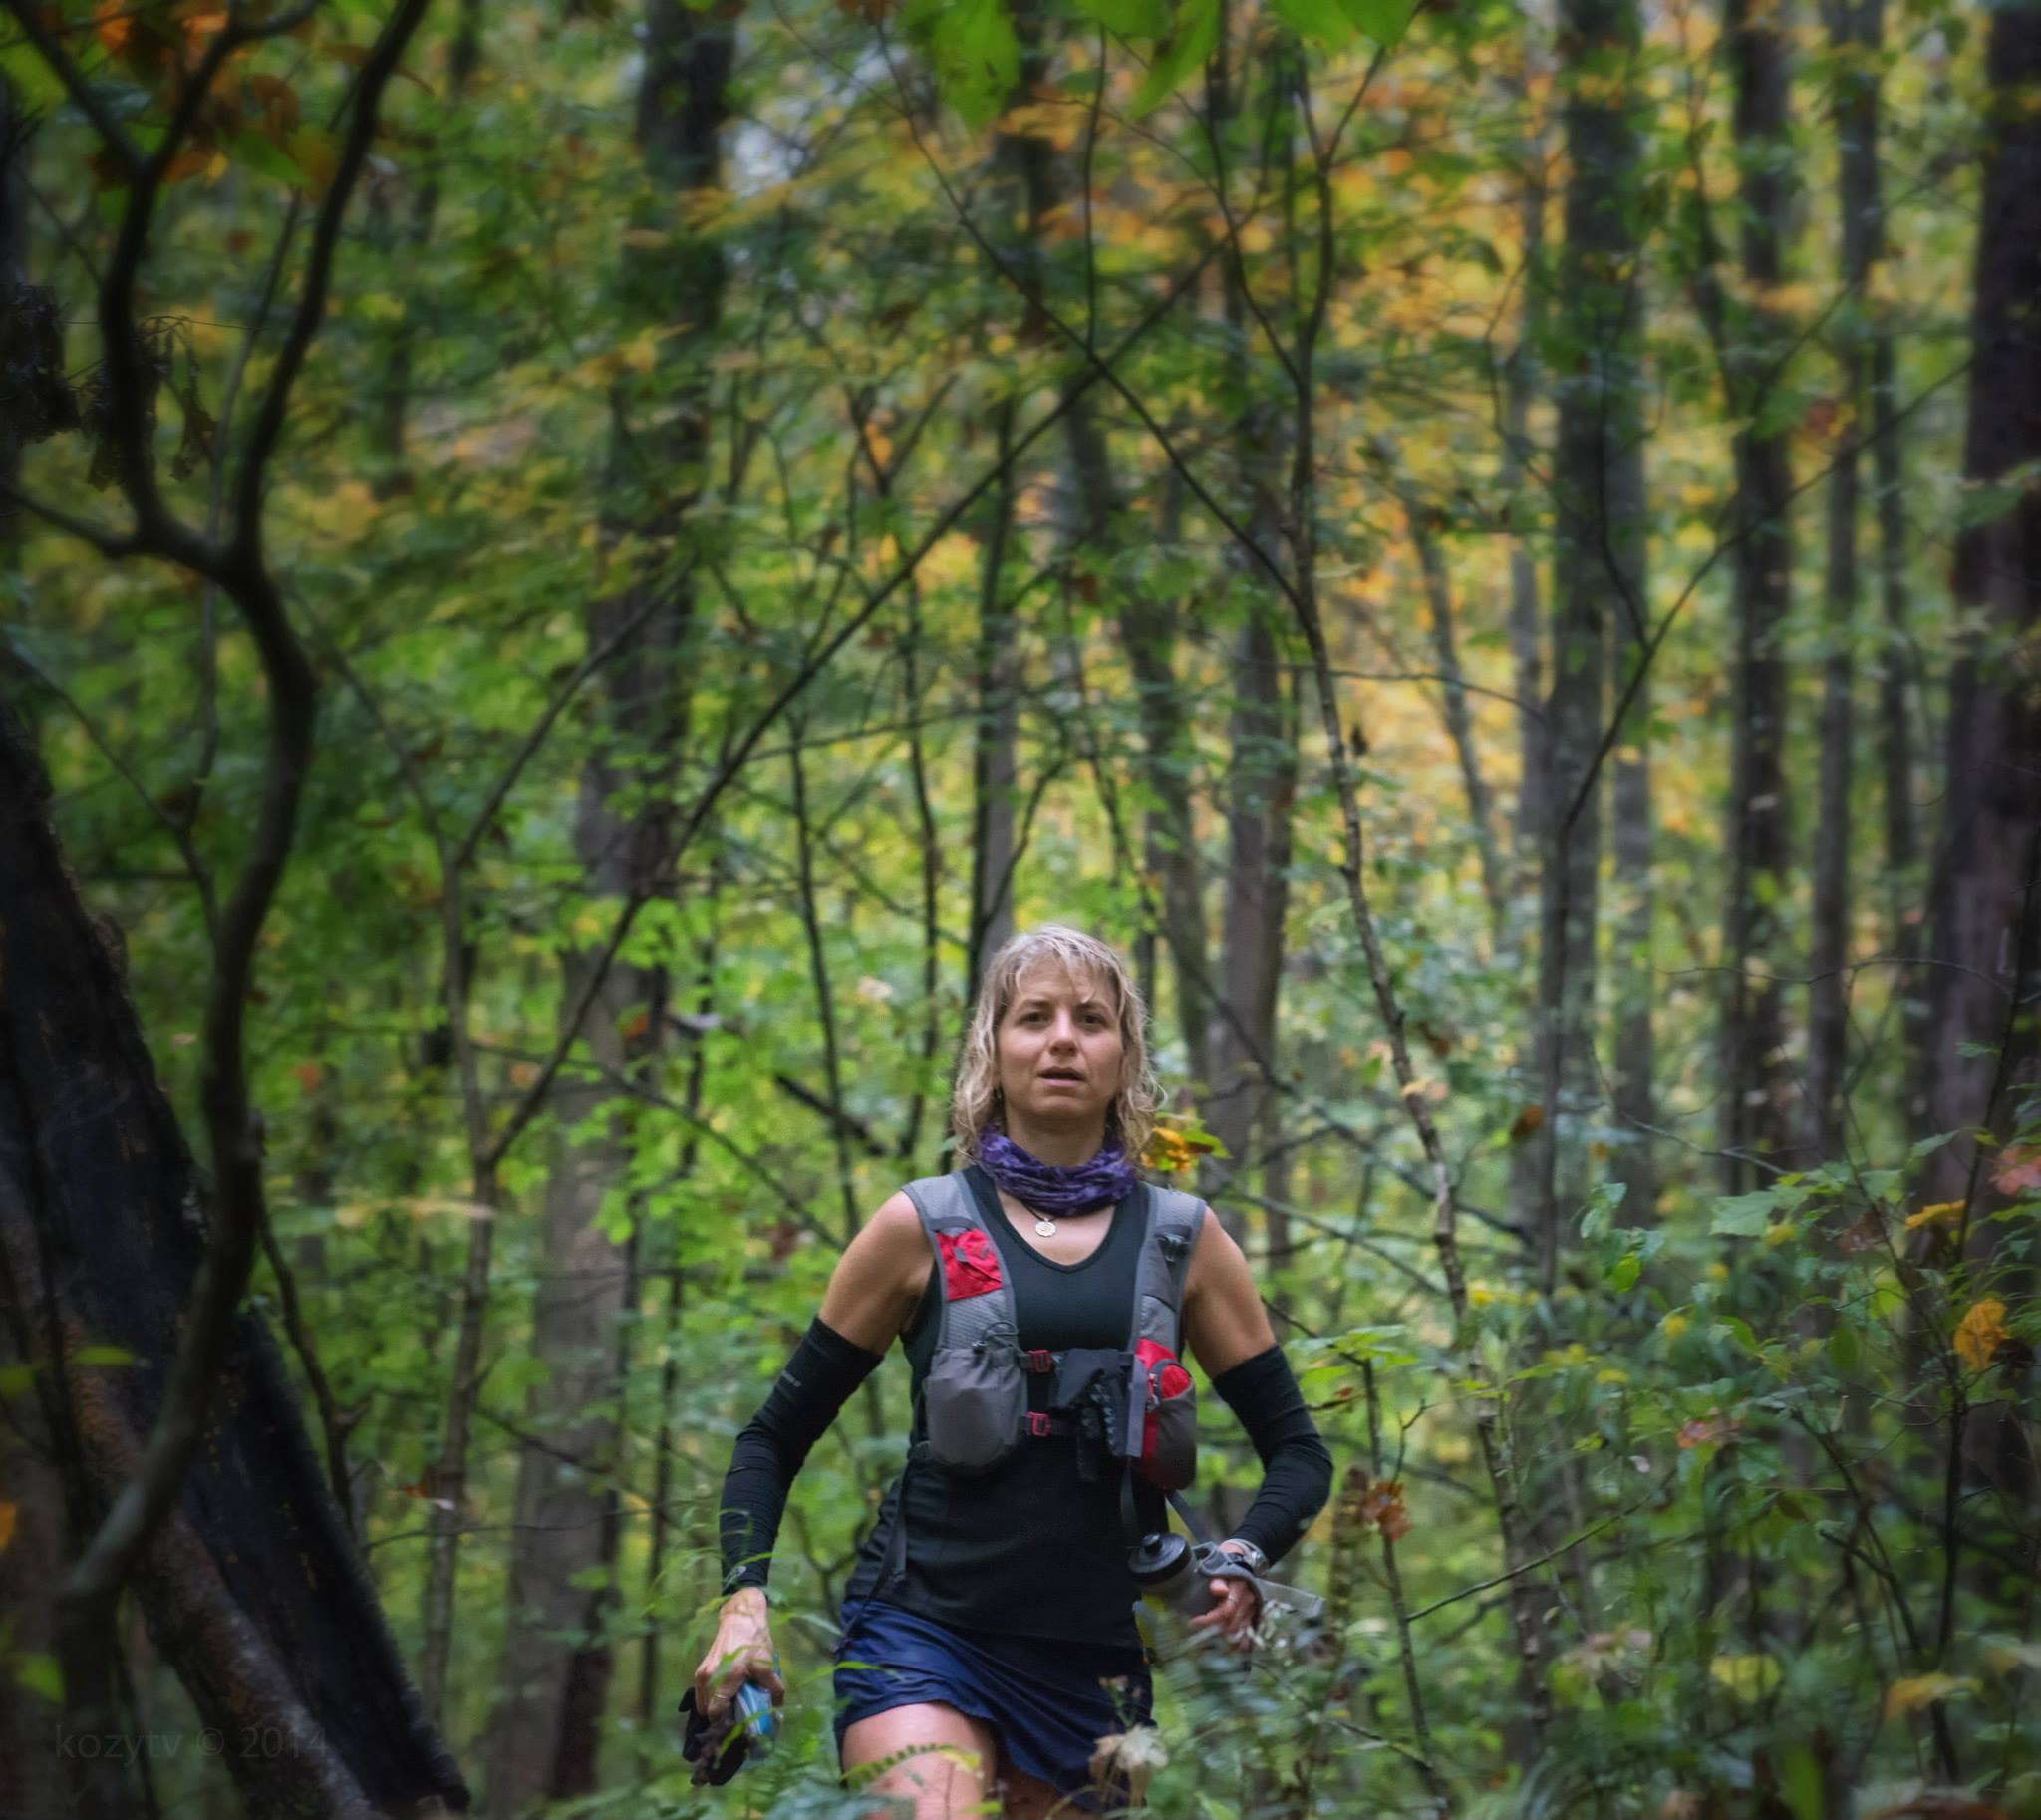 Ultramarathon mindset coach shares her DNF rule for success at 100-mile running